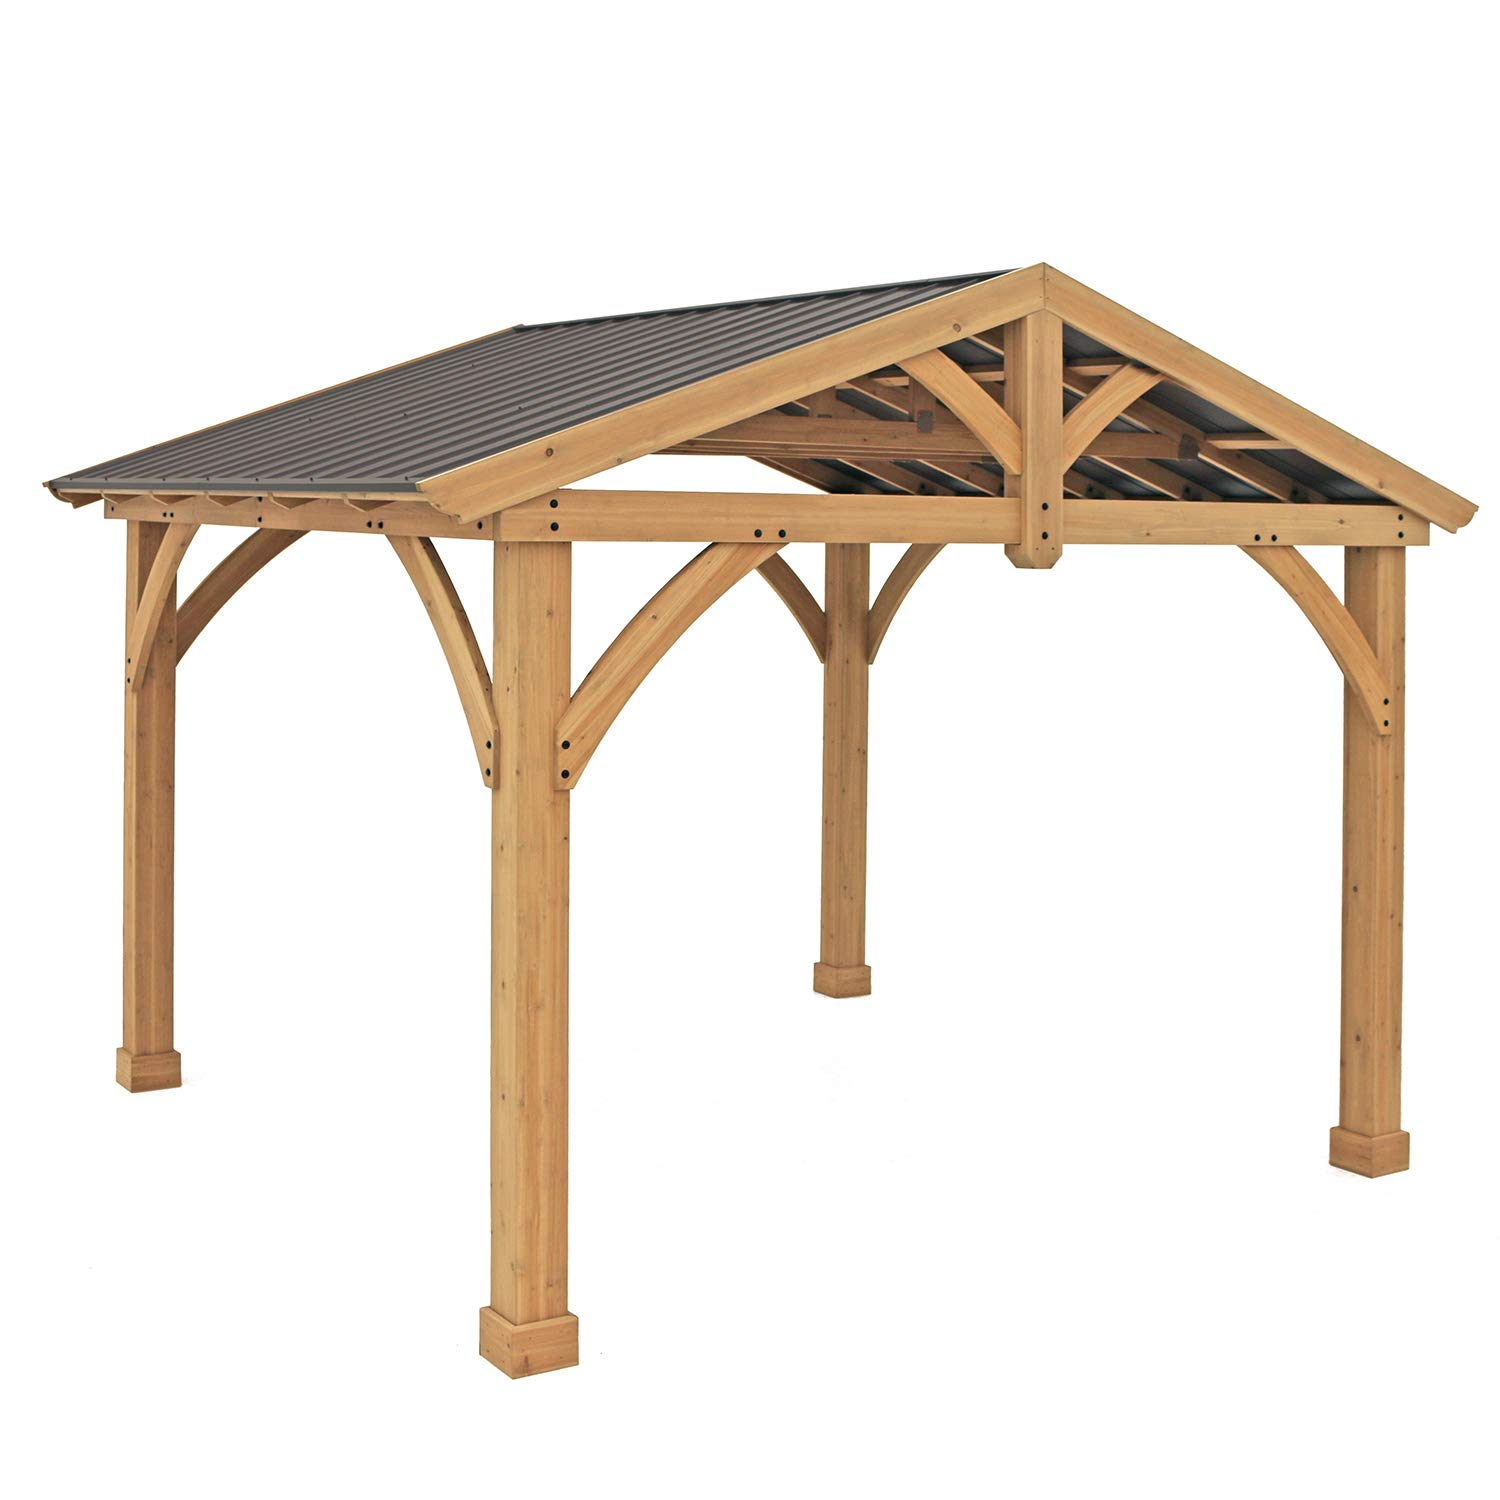 Yardistry 11 x 13 Wood Pavilion with Aluminum Roof